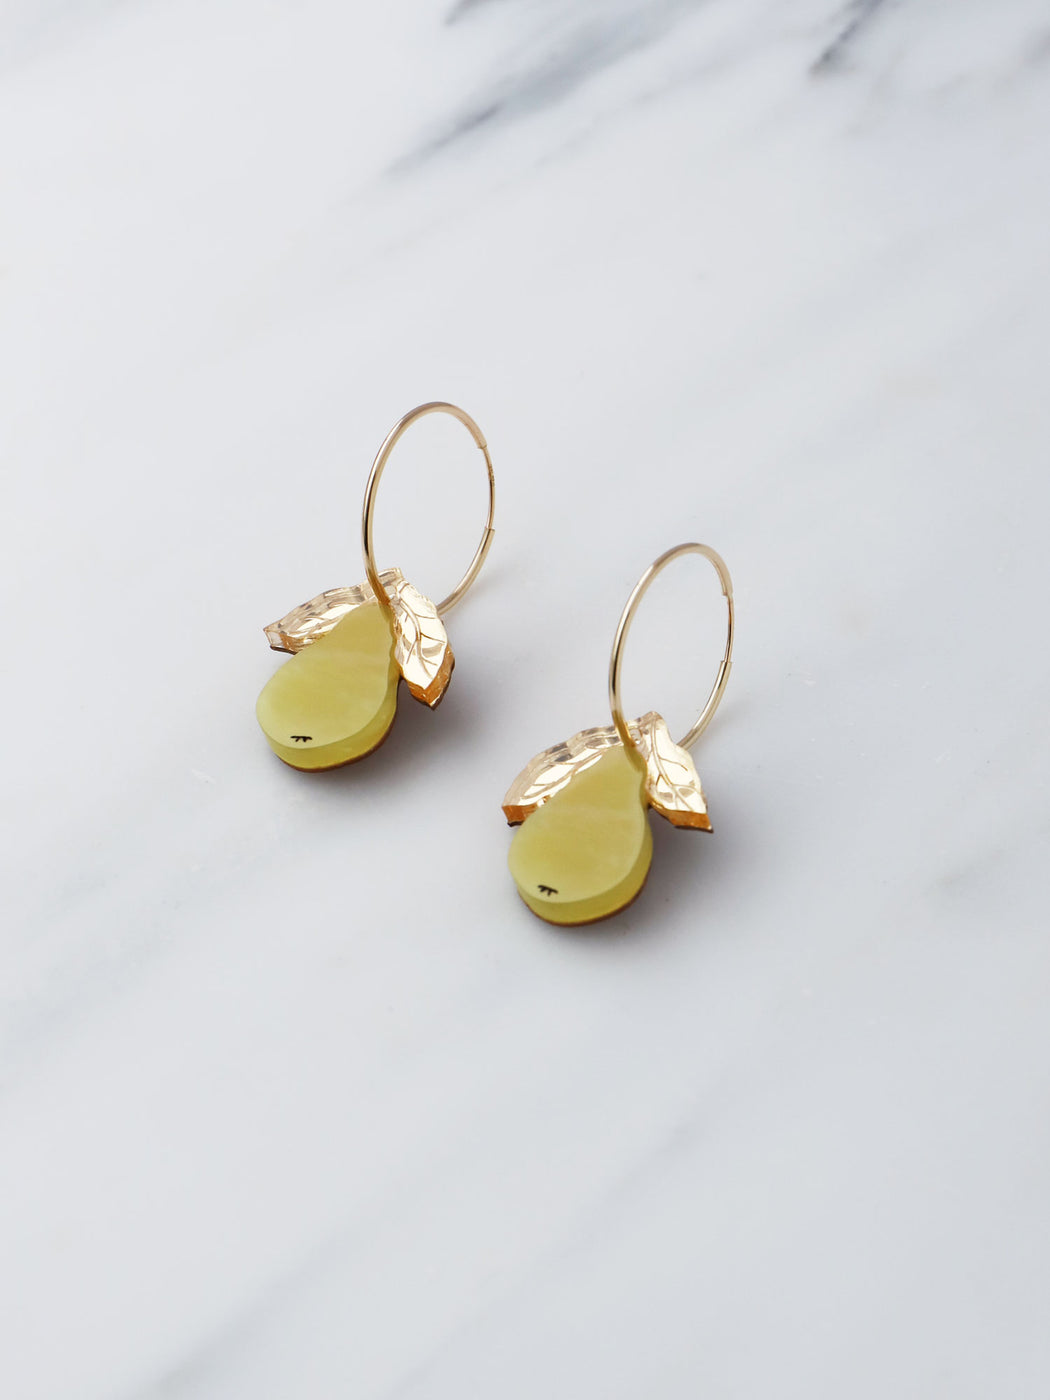 Pear Hoops. Statement jewellery, handmade in the U.K. by Wolf & Moon.r